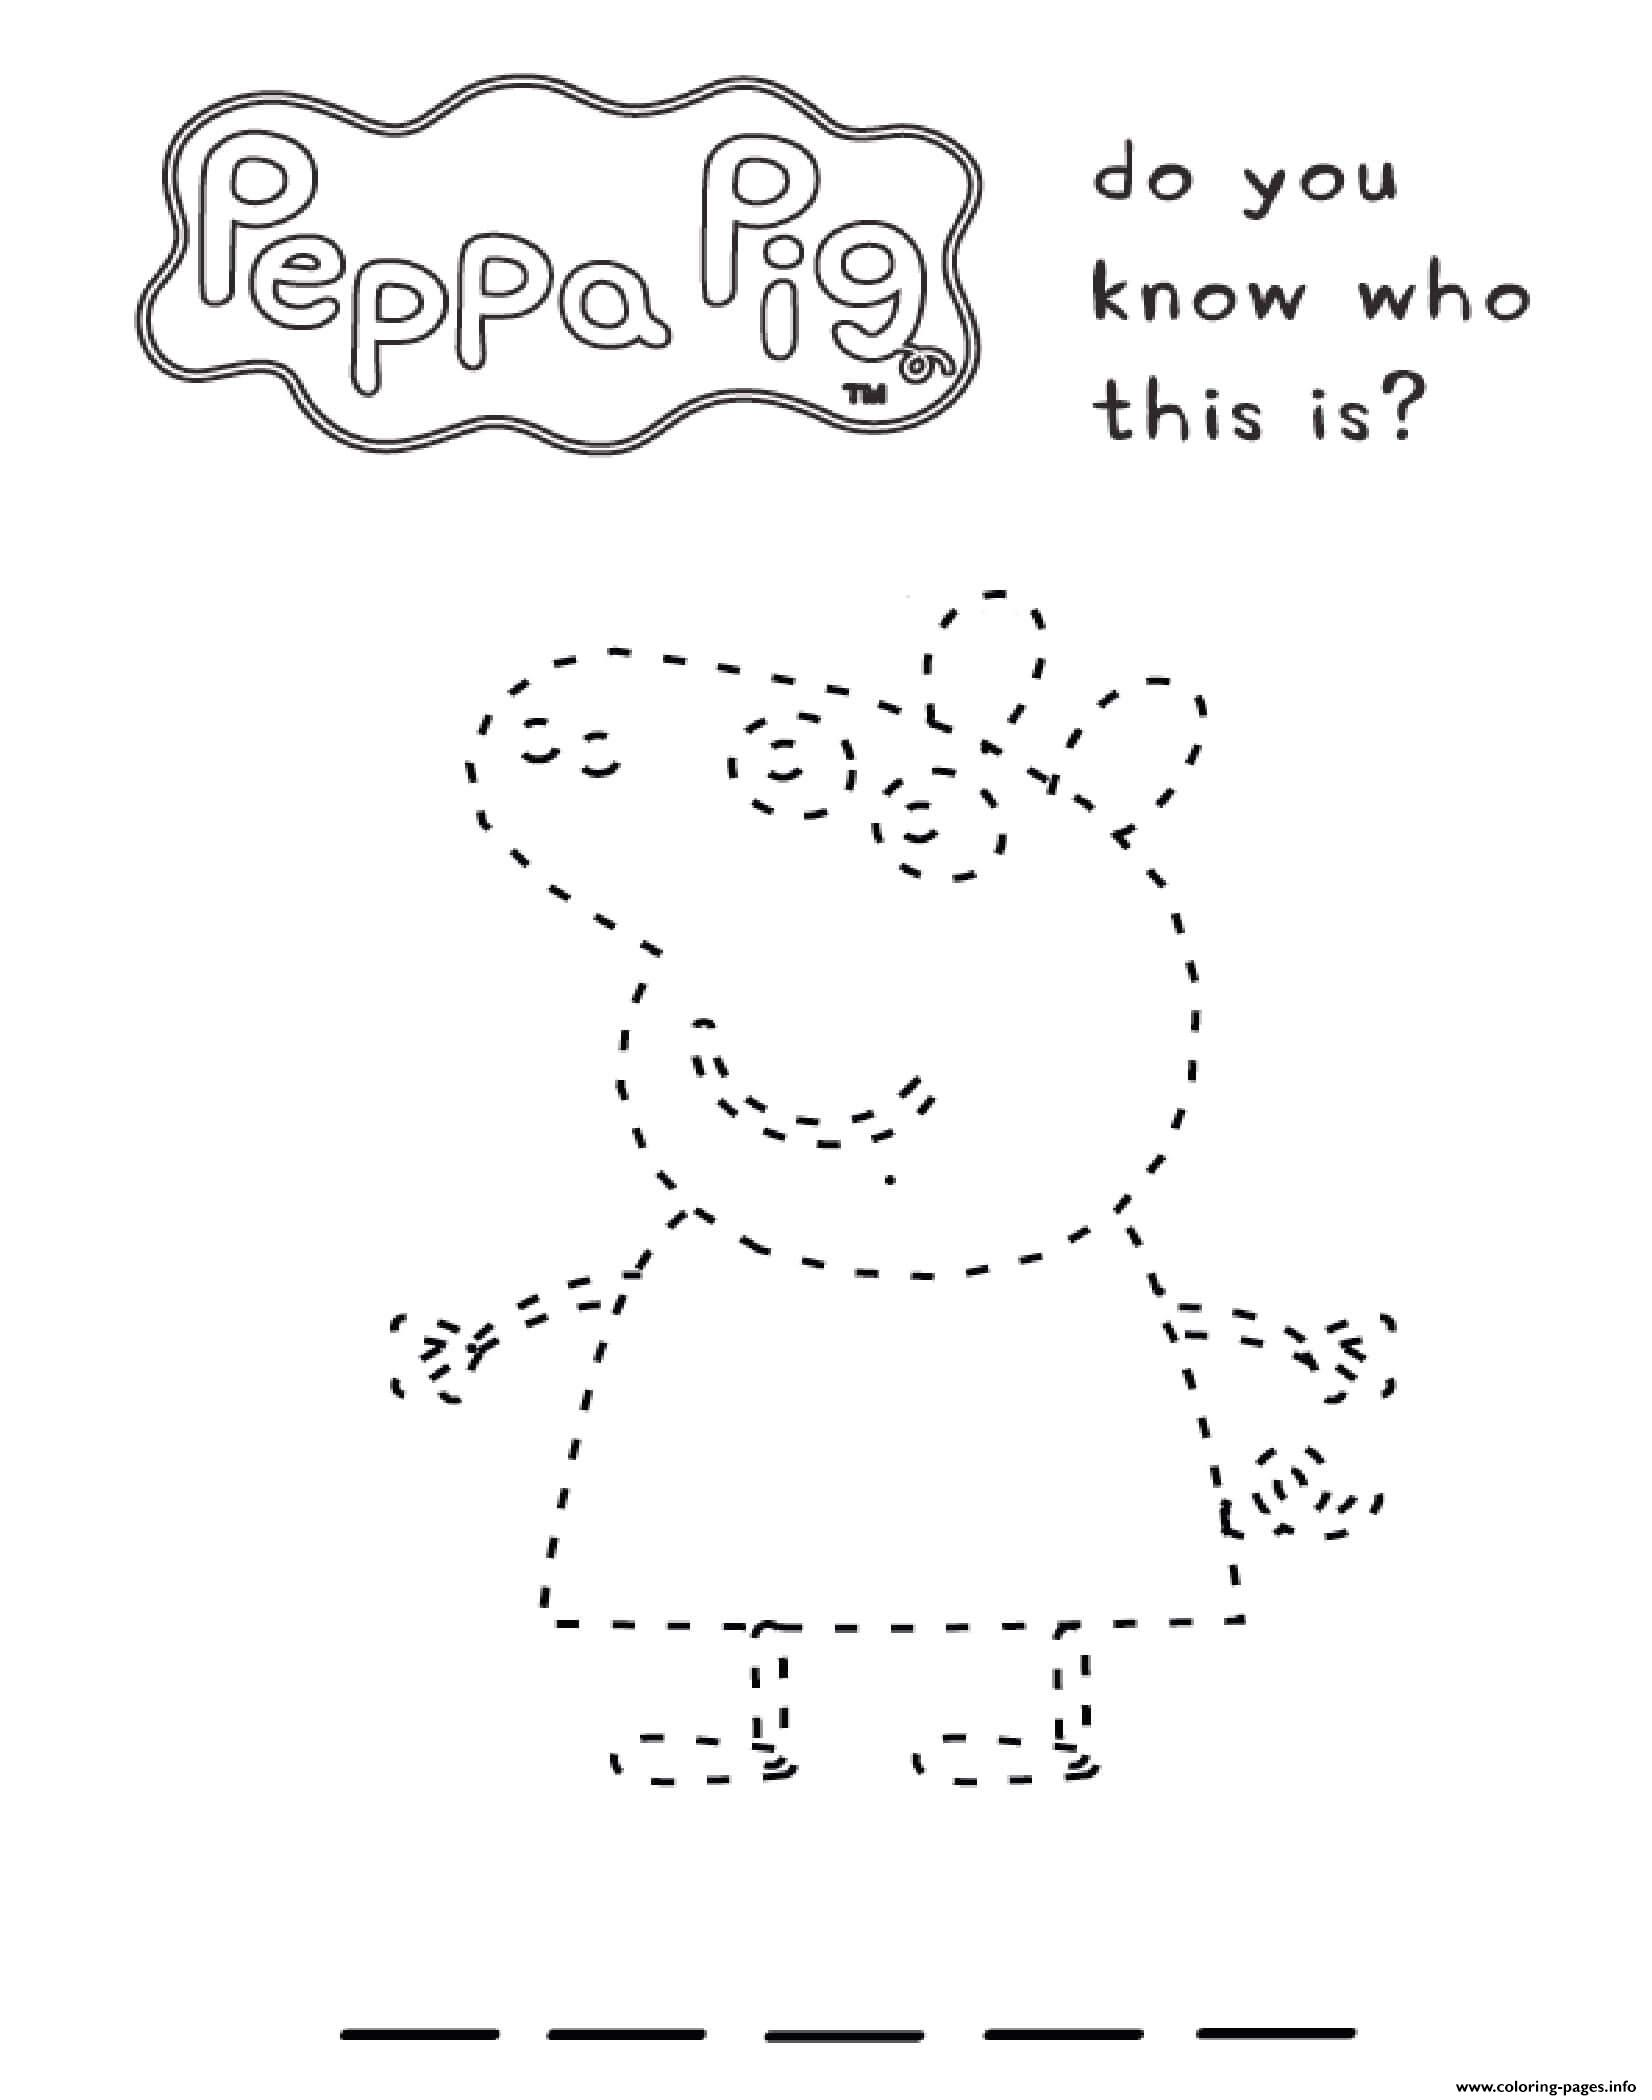 Peppa Pig Do You Know Who This